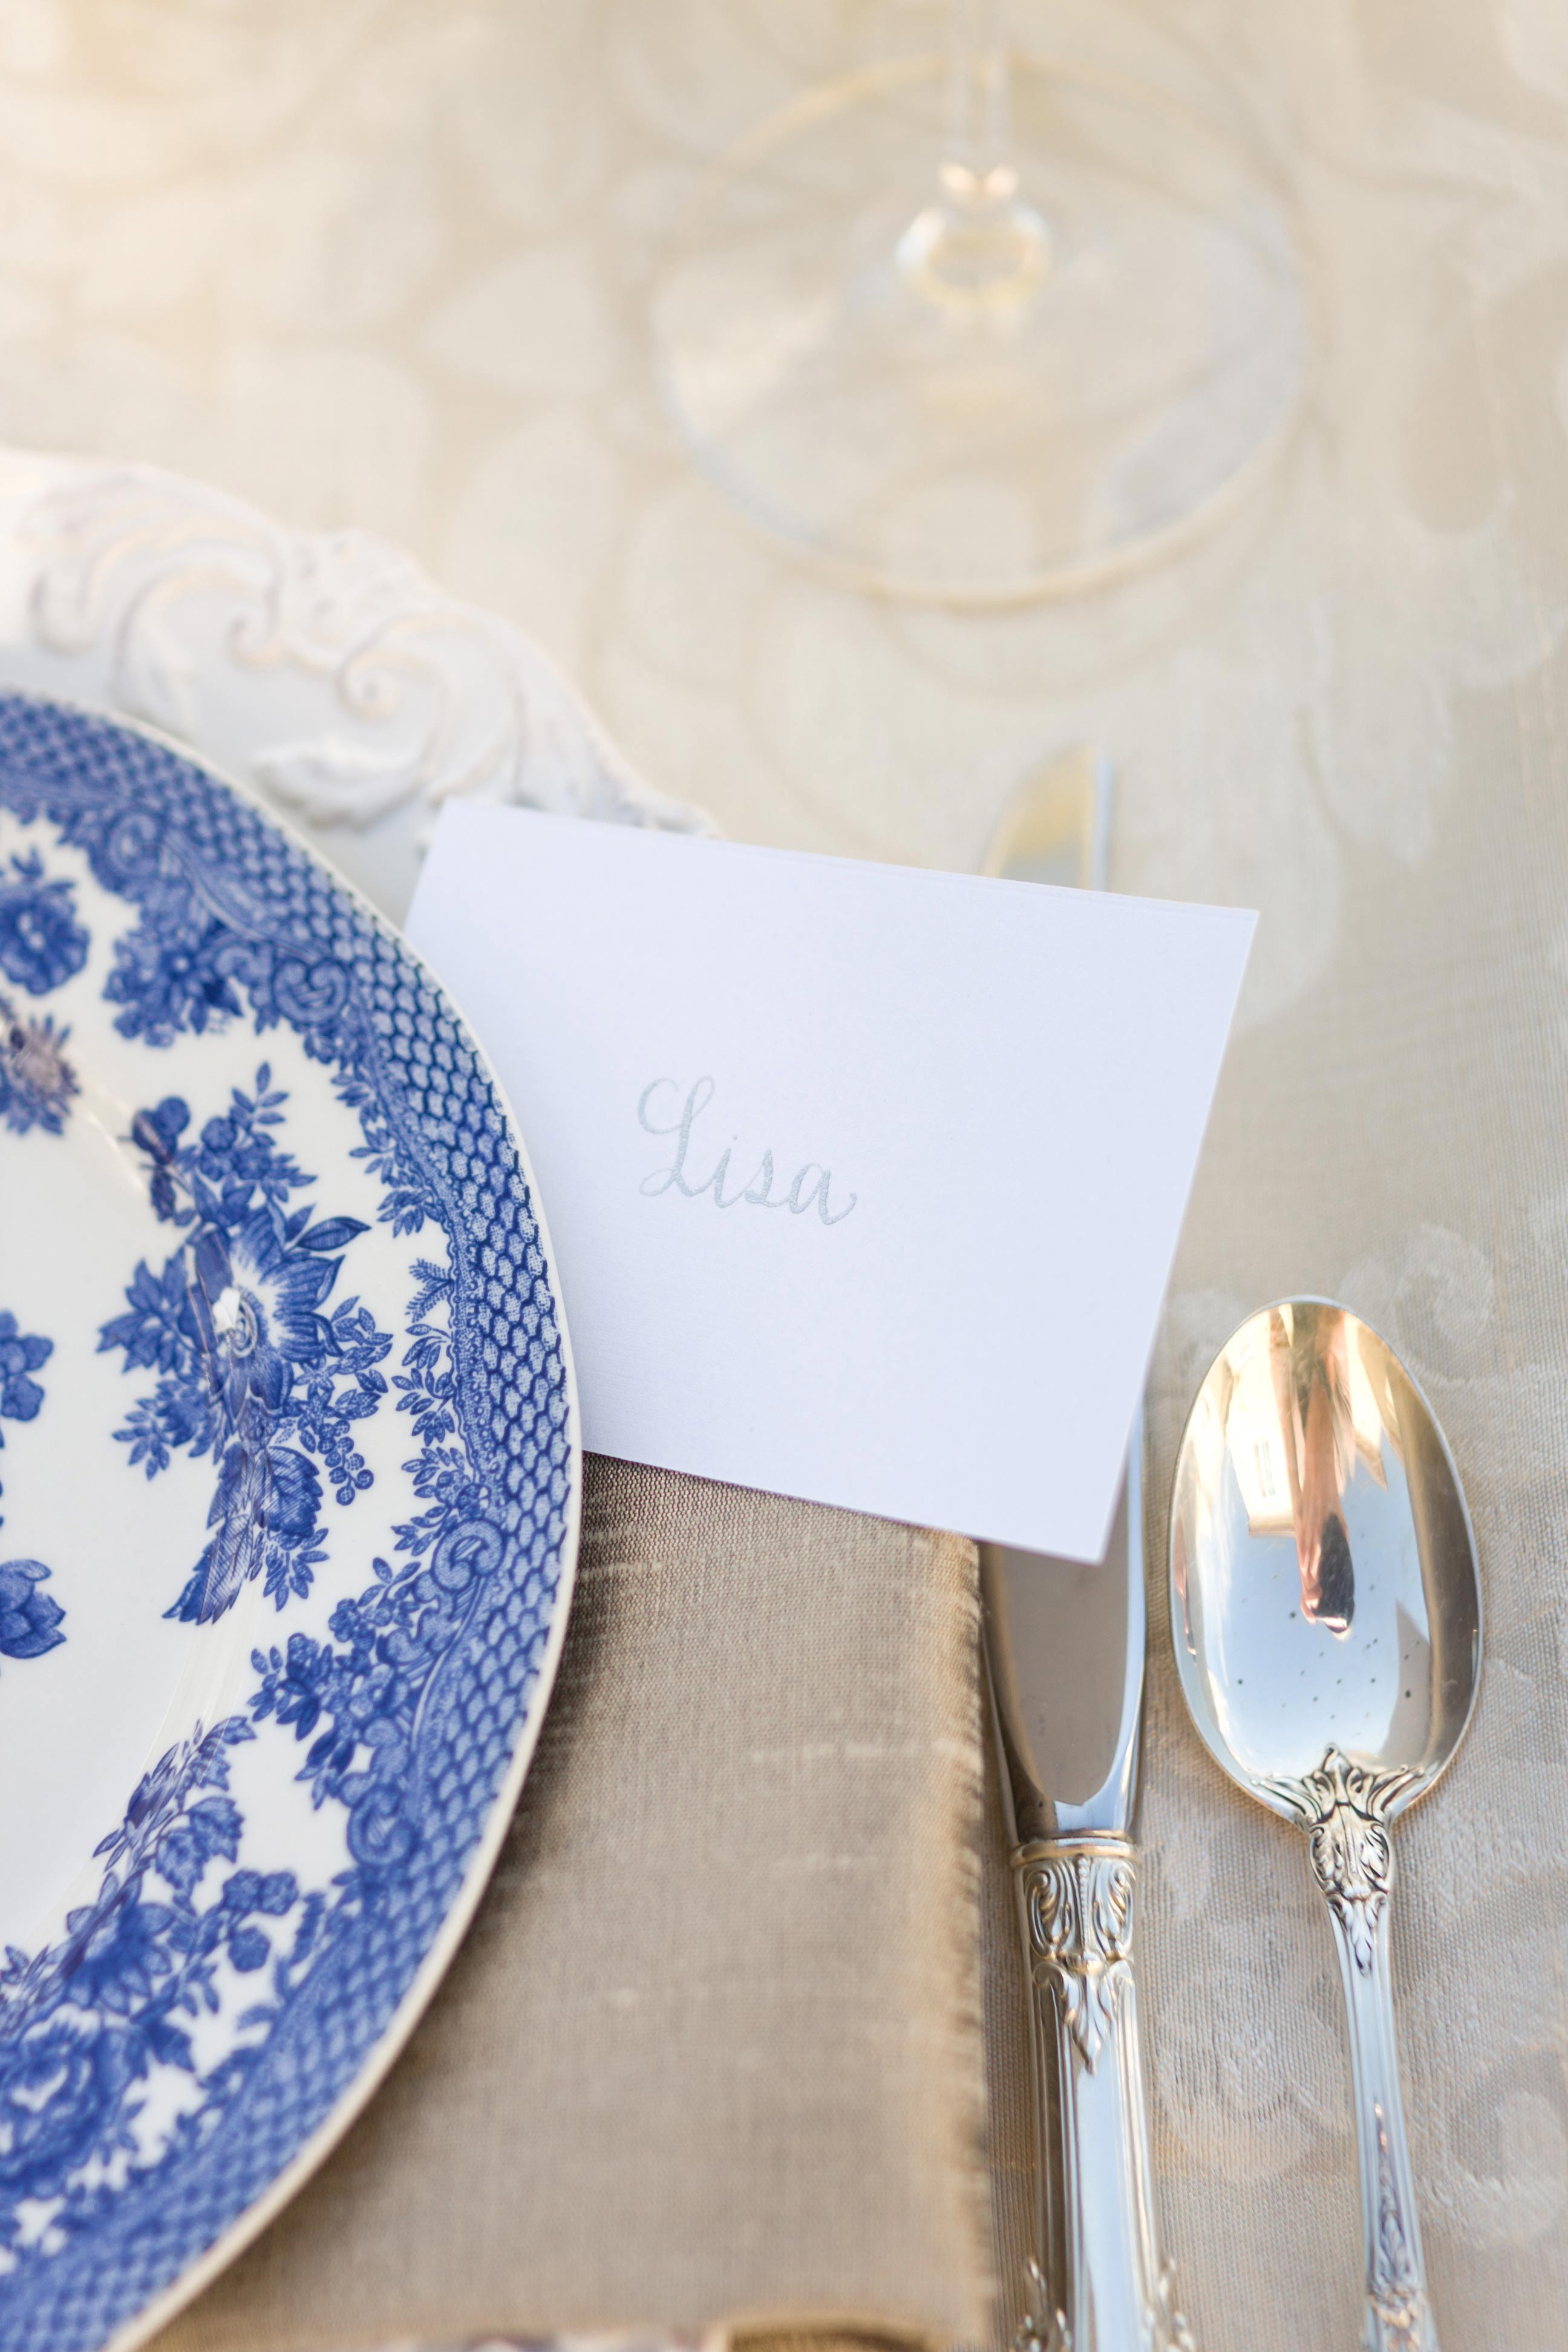 Seating place card calligraphy with blue and white china chinoiserie decor bridal shower